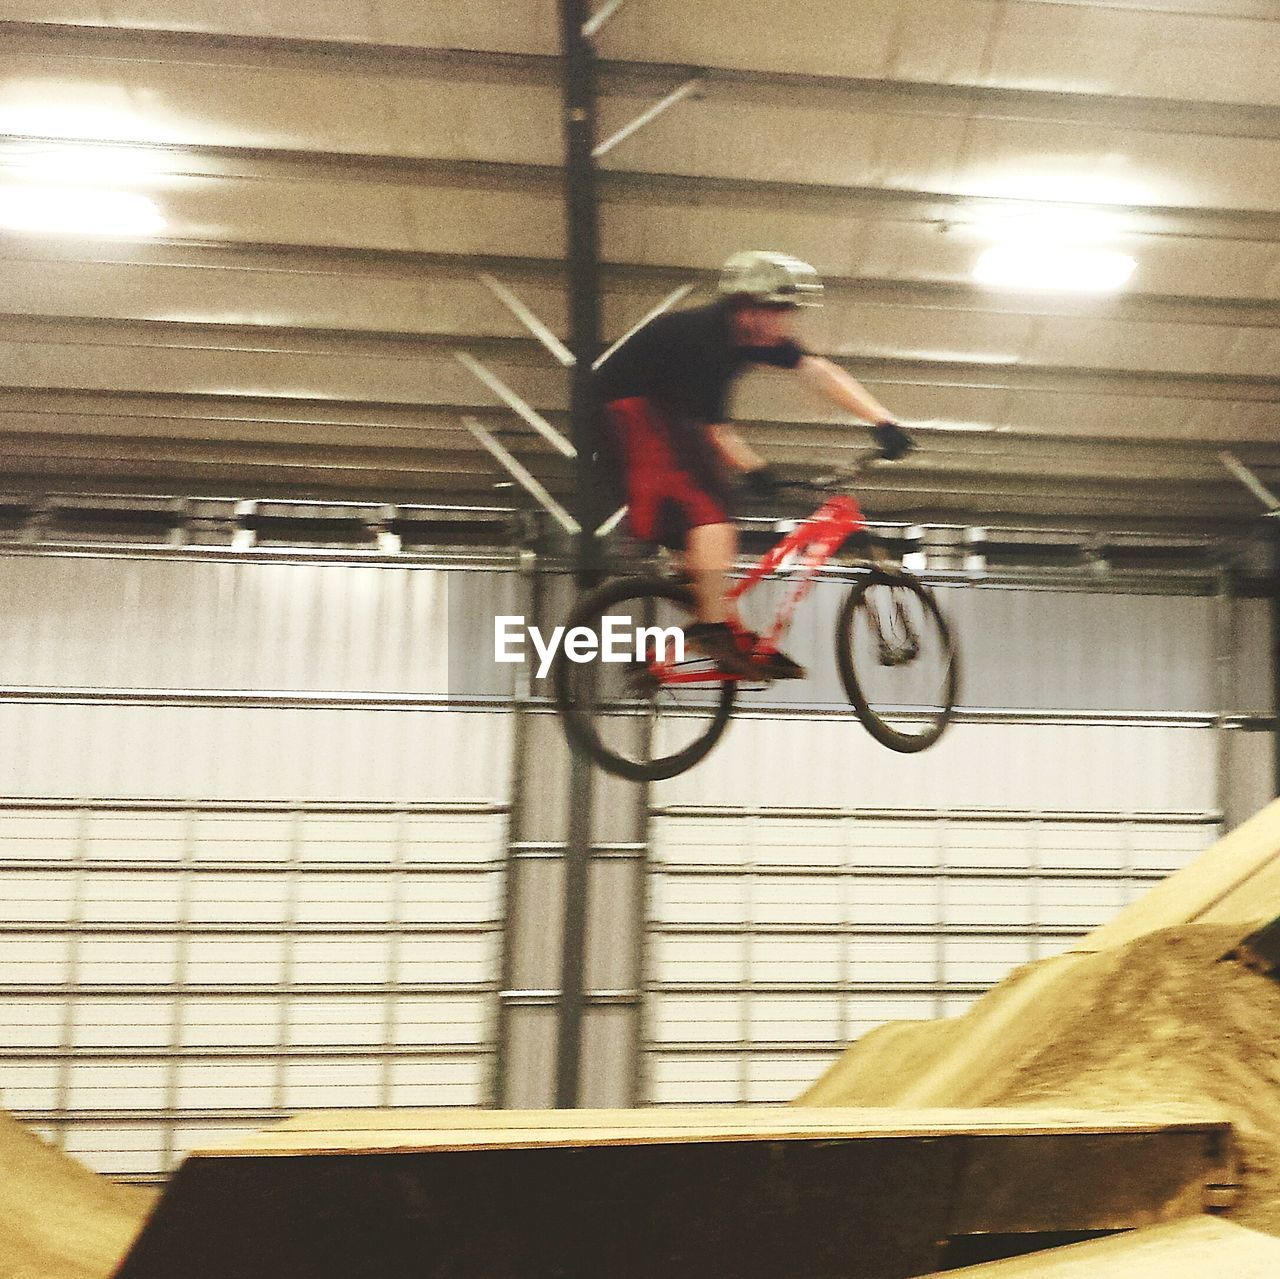 blurred motion, motion, bicycle, full length, speed, one person, men, illuminated, real people, indoors, transportation, mid-air, risk, stunt, low angle view, skill, headwear, day, sportsman, young adult, people